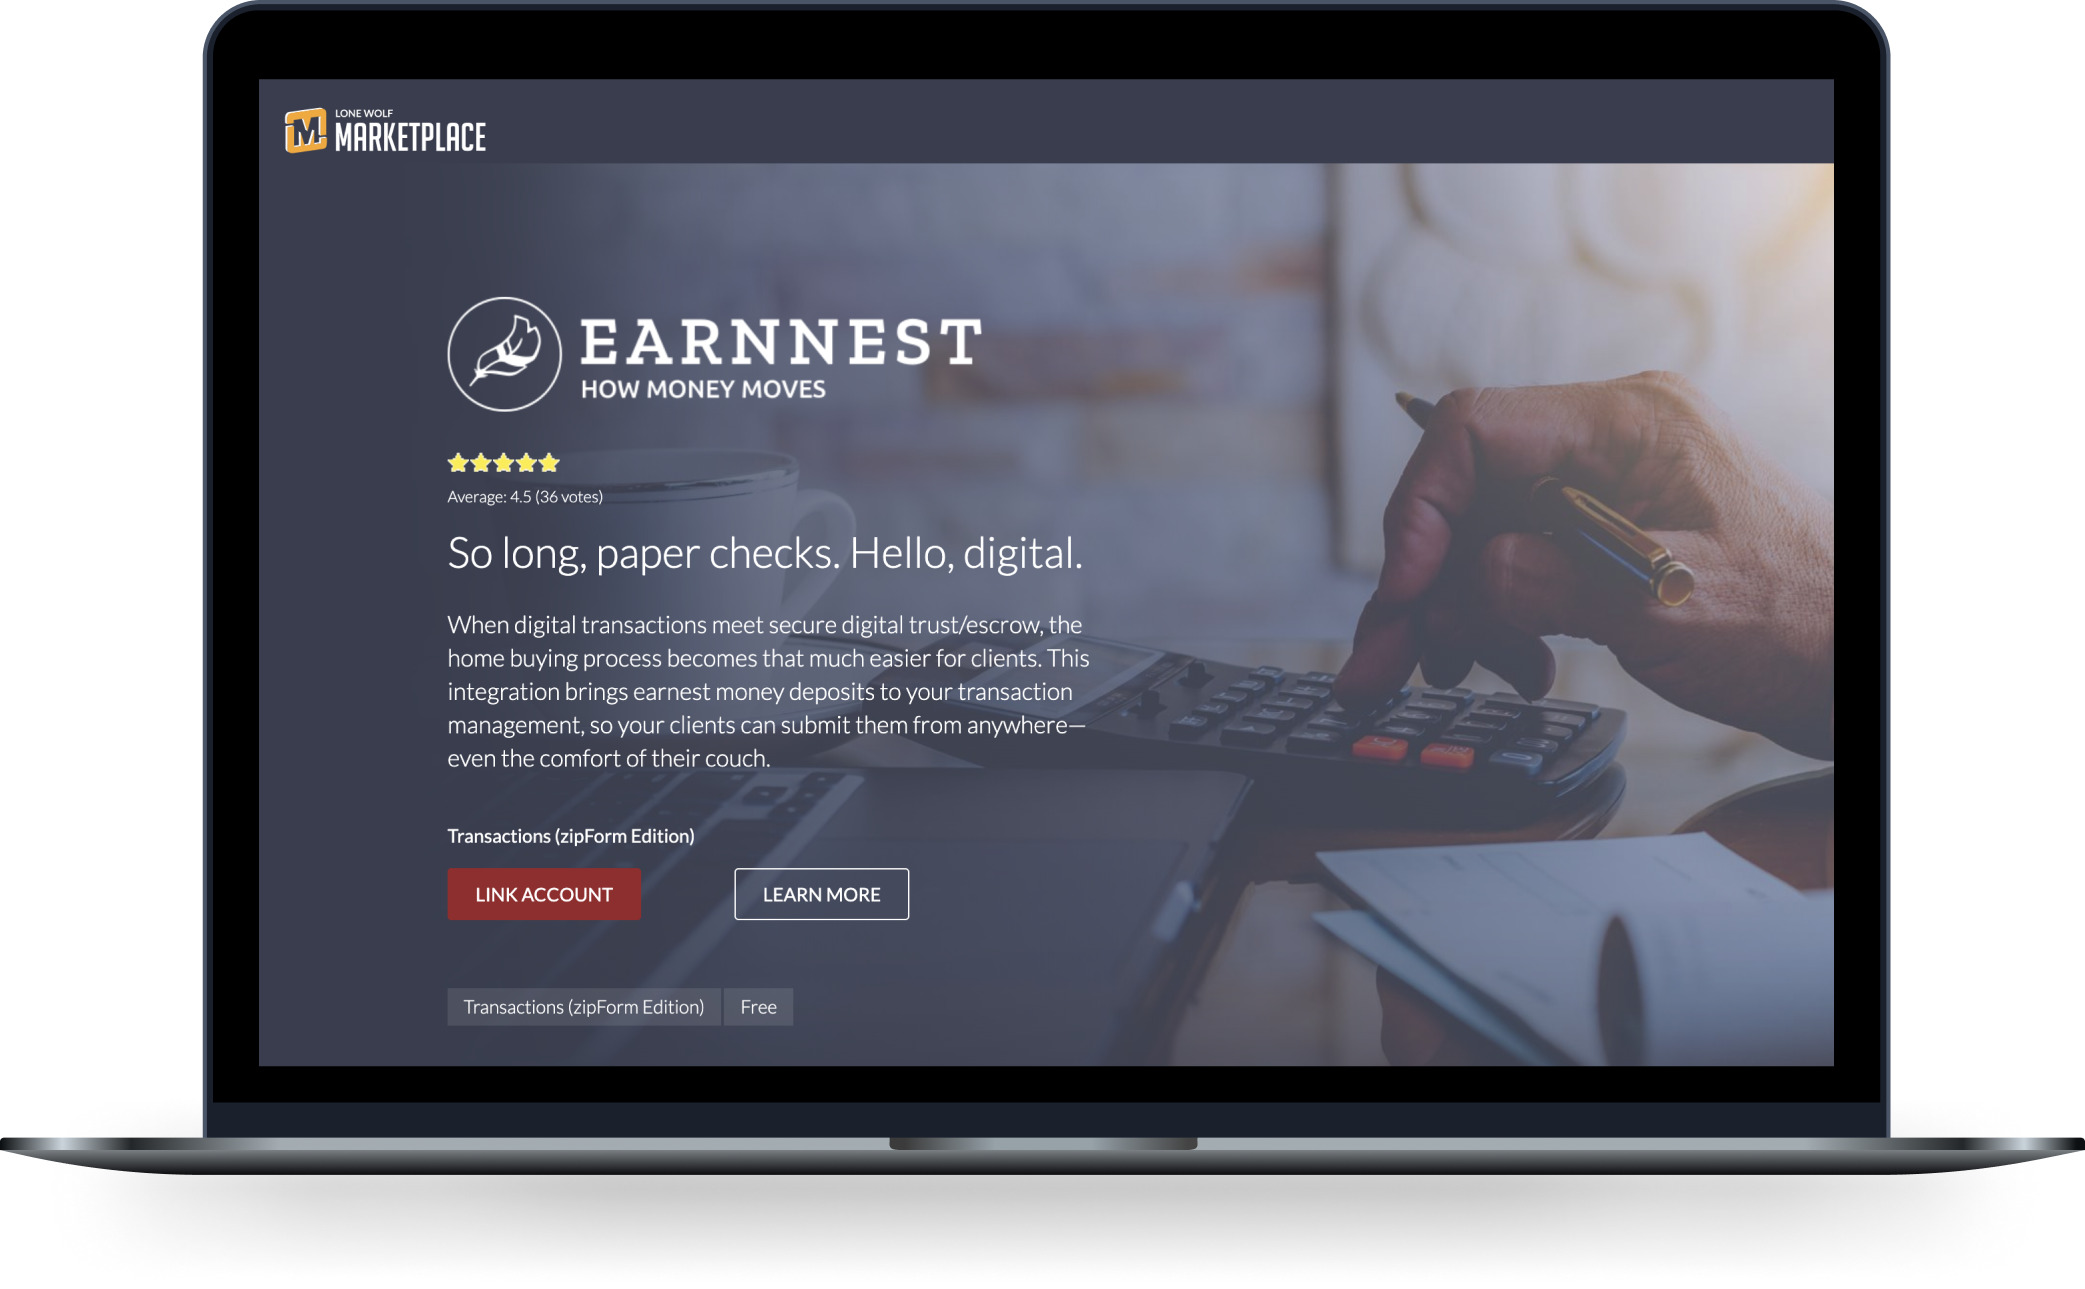 Laptop computer showing Lone Wolf Marketplace page where you can link your account with Earnnest